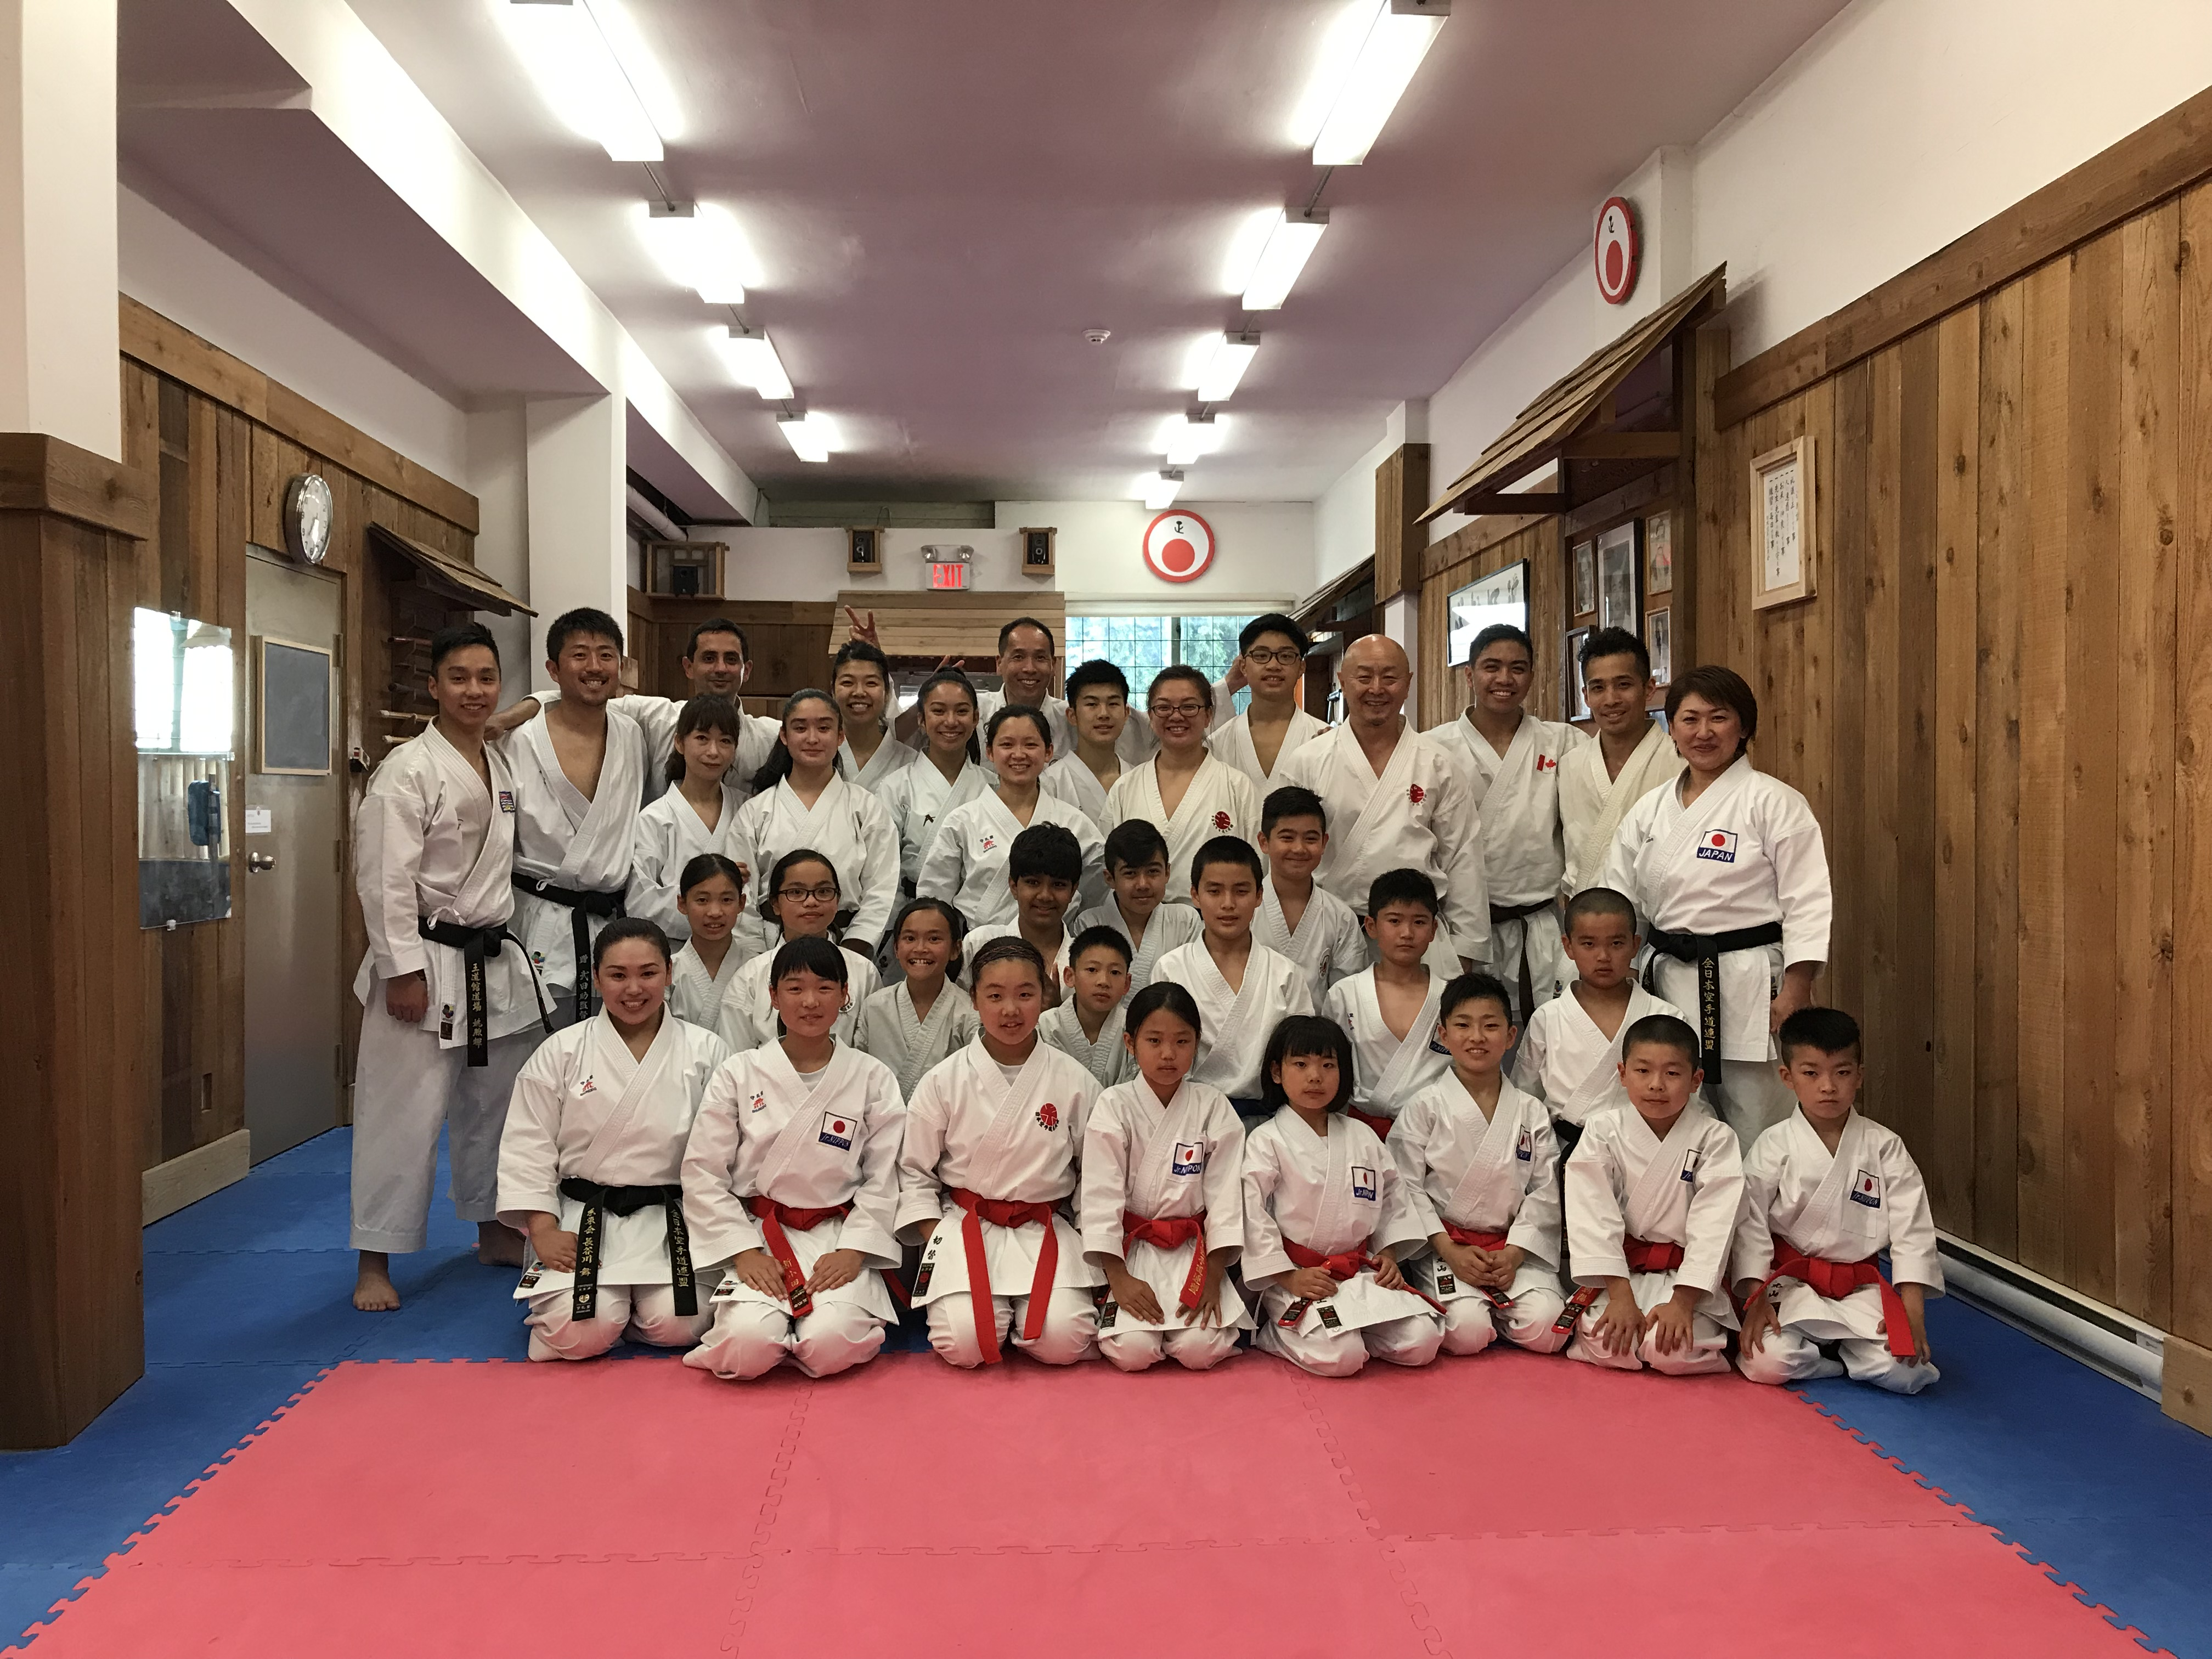 2019-05-30 Training with Jr. Nippon